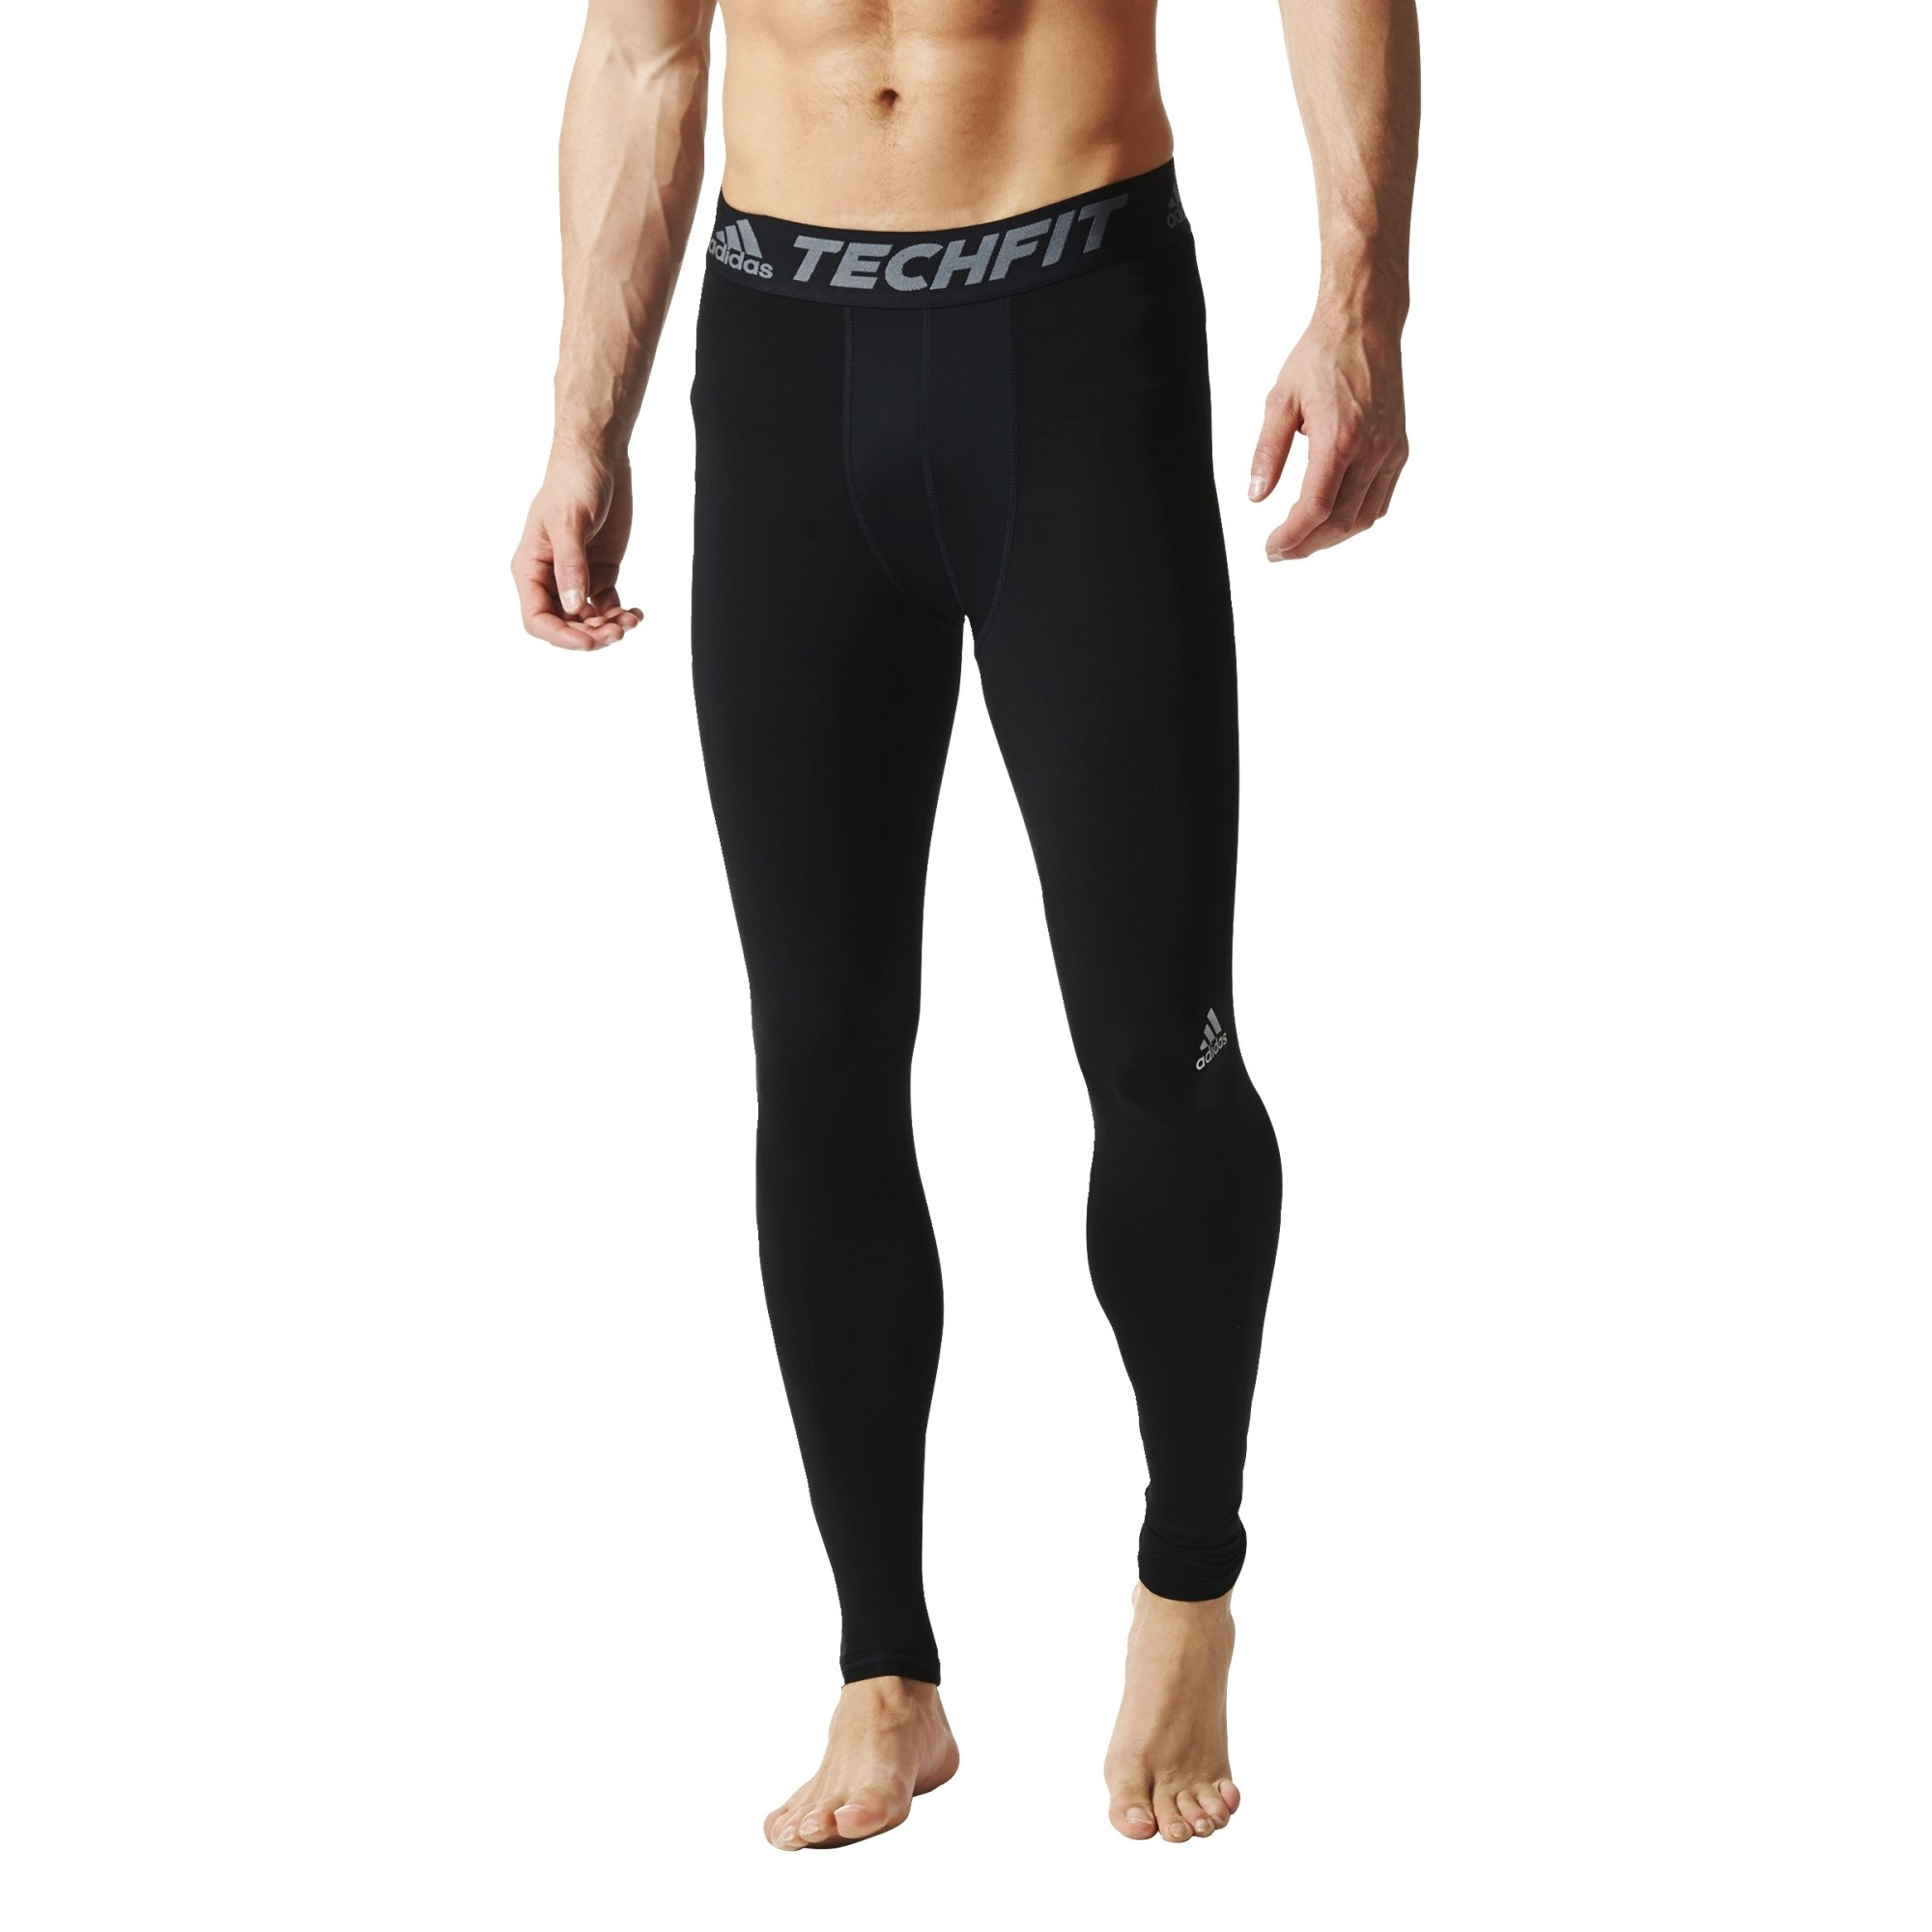 bf8ebf4d391 Best Rated in Men s Sports Compression Pants   Tights   Helpful ...